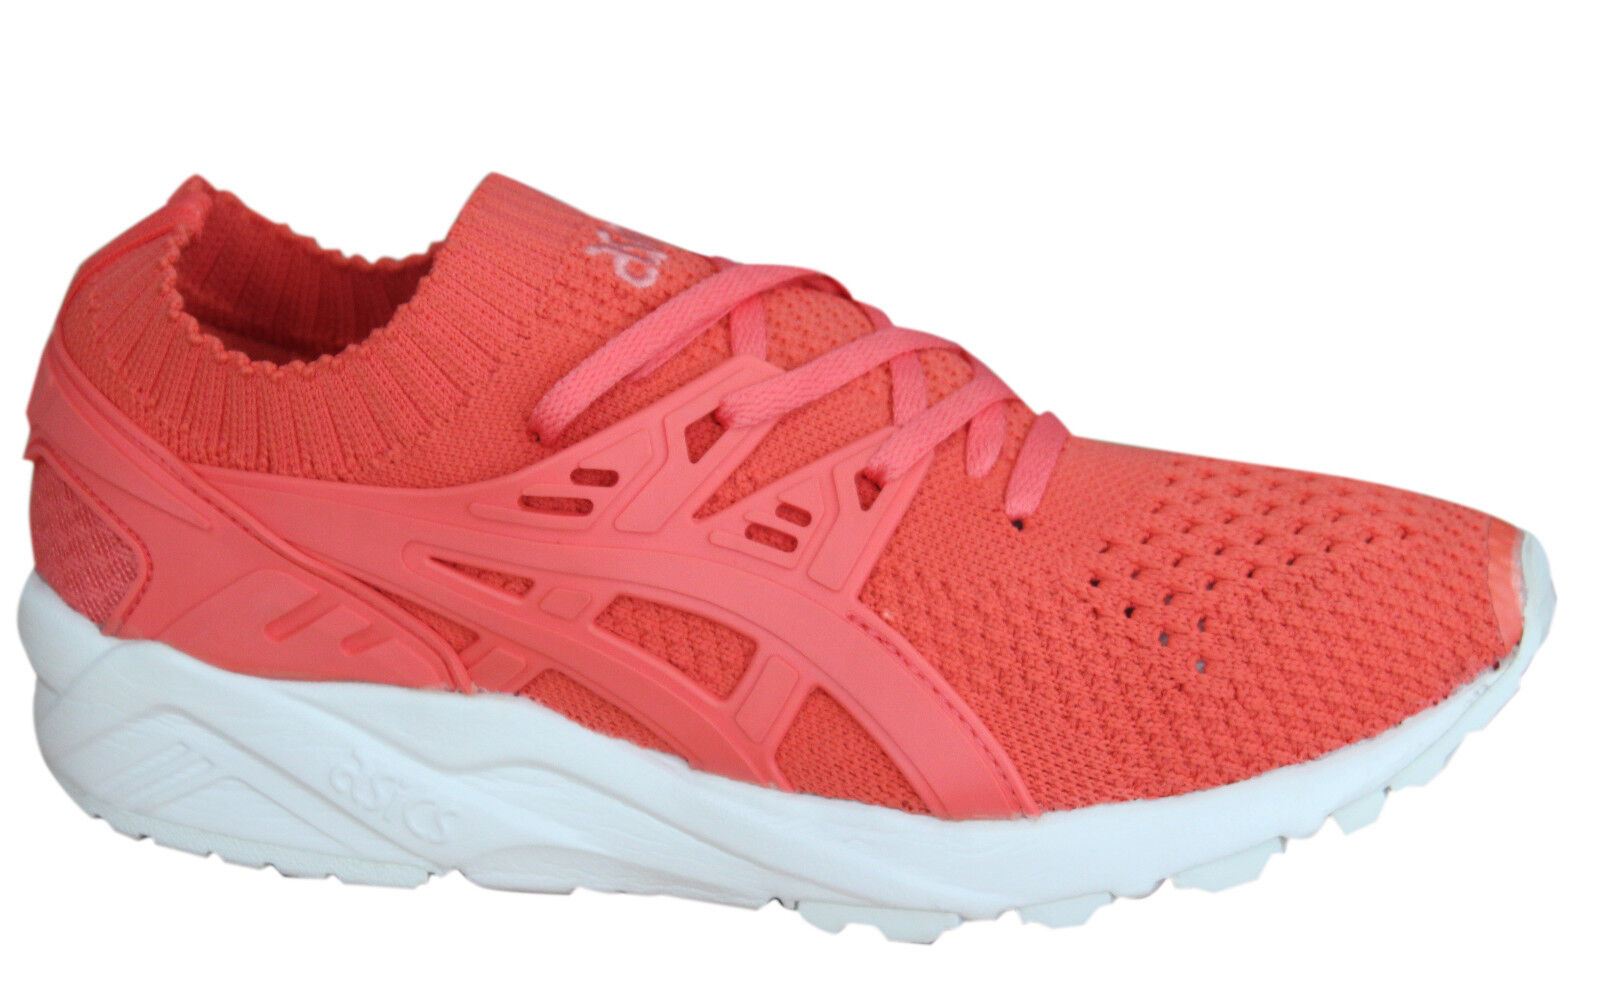 5e65d2f59d850 Details about Asics Gel-Kayano Trainers Knit Womens Shoes Lace Up Textile  Peach H7N6N 7676 D40